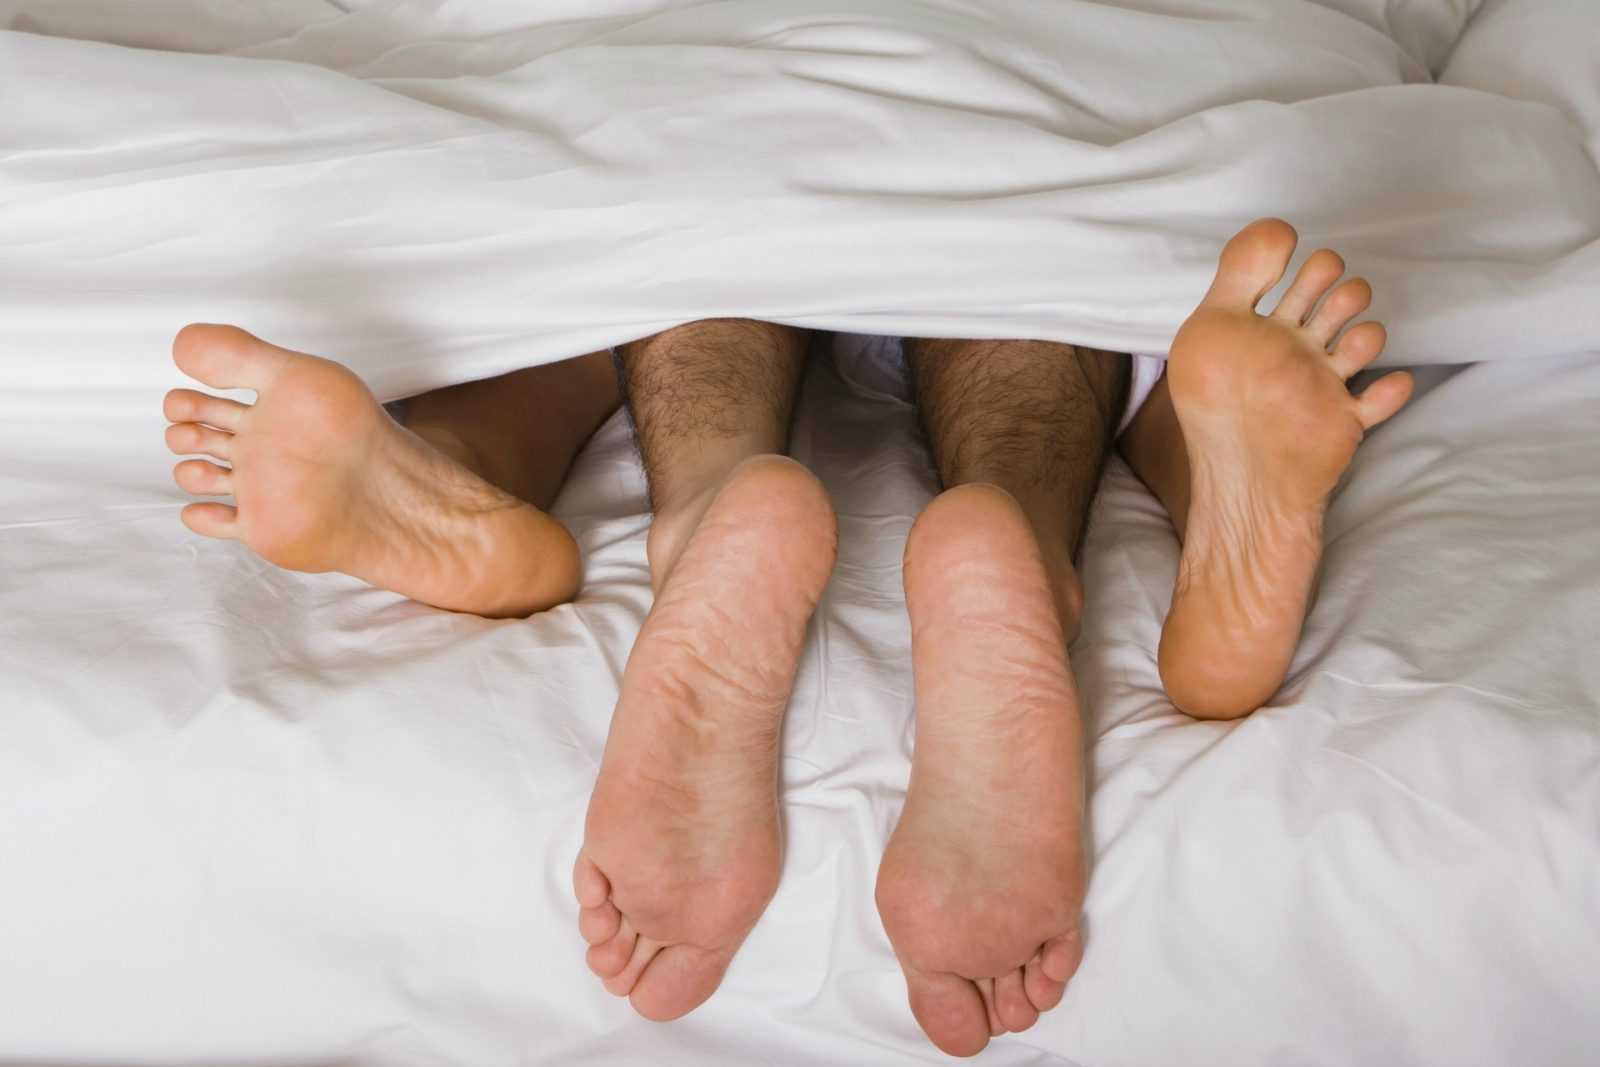 People should only be having as much sex as they and their partner is comfortable with.